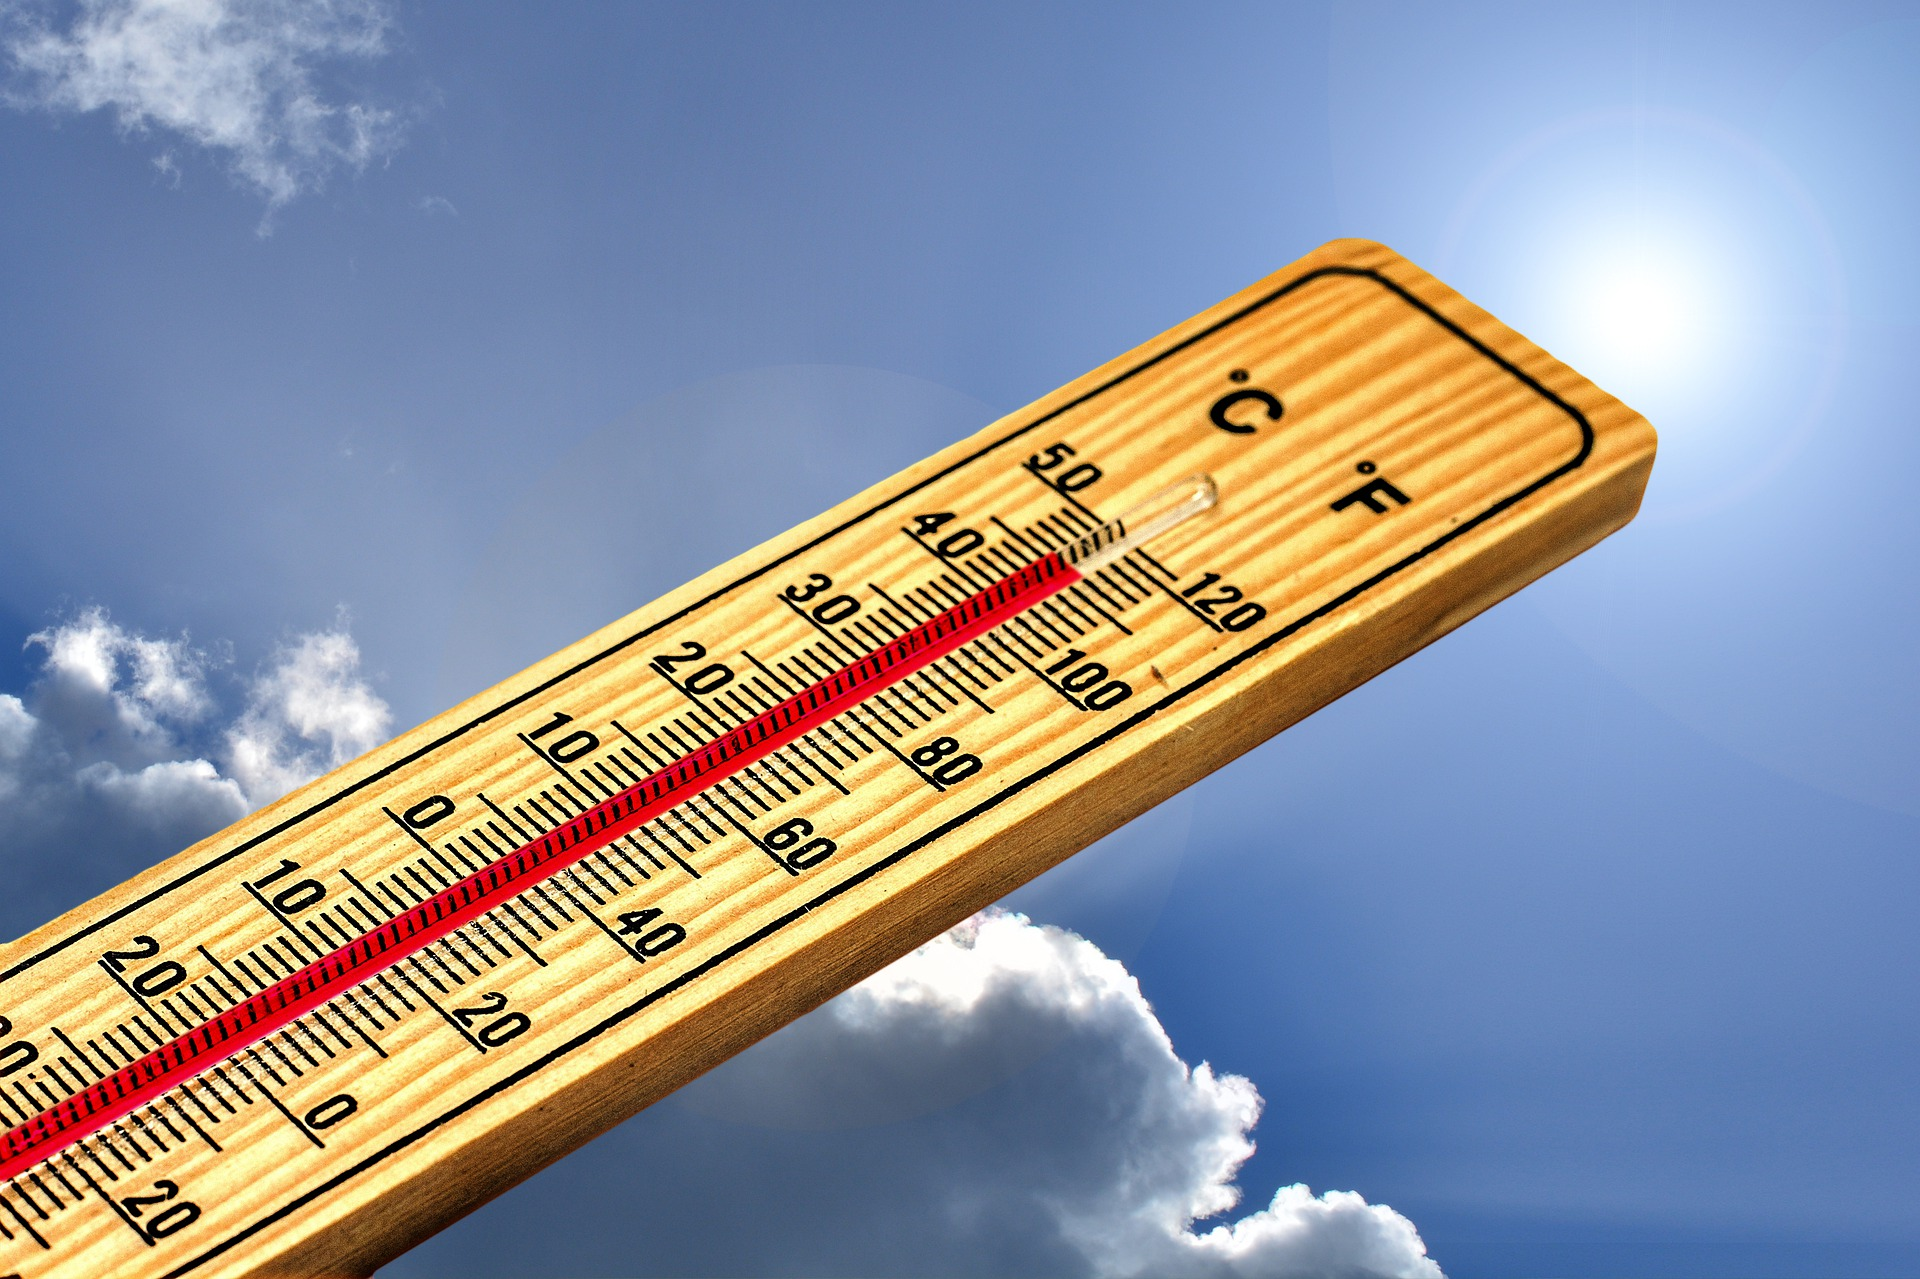 image of thermometer show hot temperatures